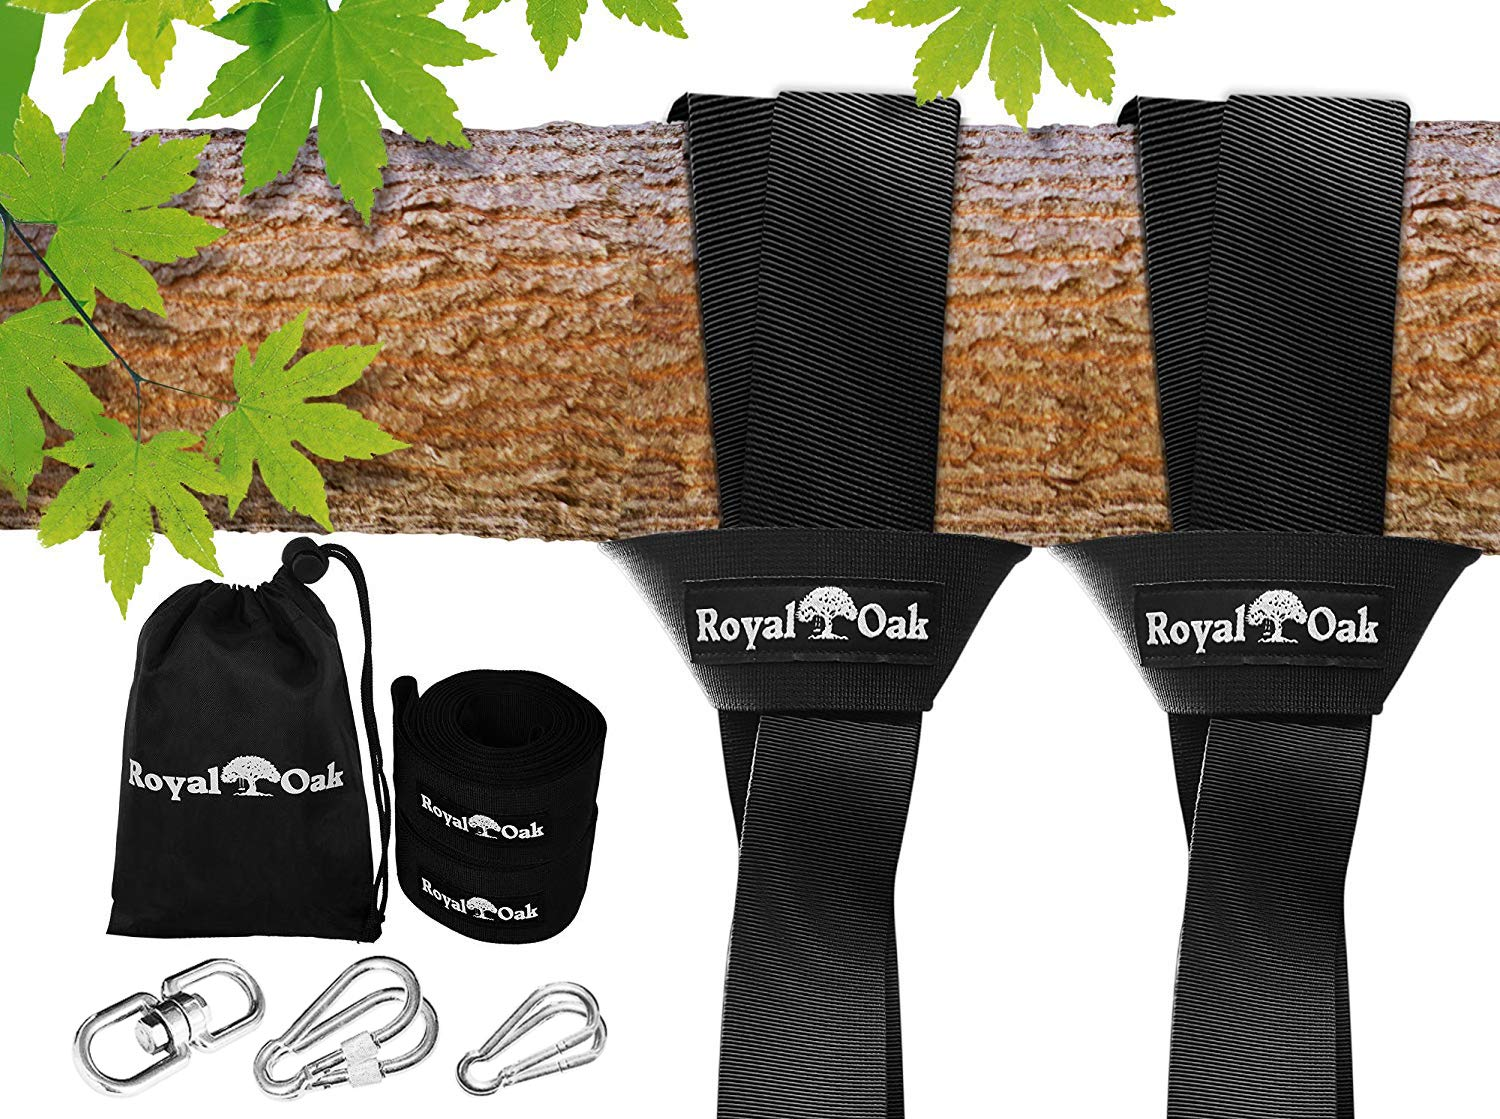 Easy Hang (8FT) Tree Swing Strap X2 - Holds 4400lbs. - Heavy Duty Carabiner - Bonus Spinner - Perfect for Tire and Saucer Swings - 100% Waterproof - Easy Picture Instructions - Carry Bag Included! by Royal Oak